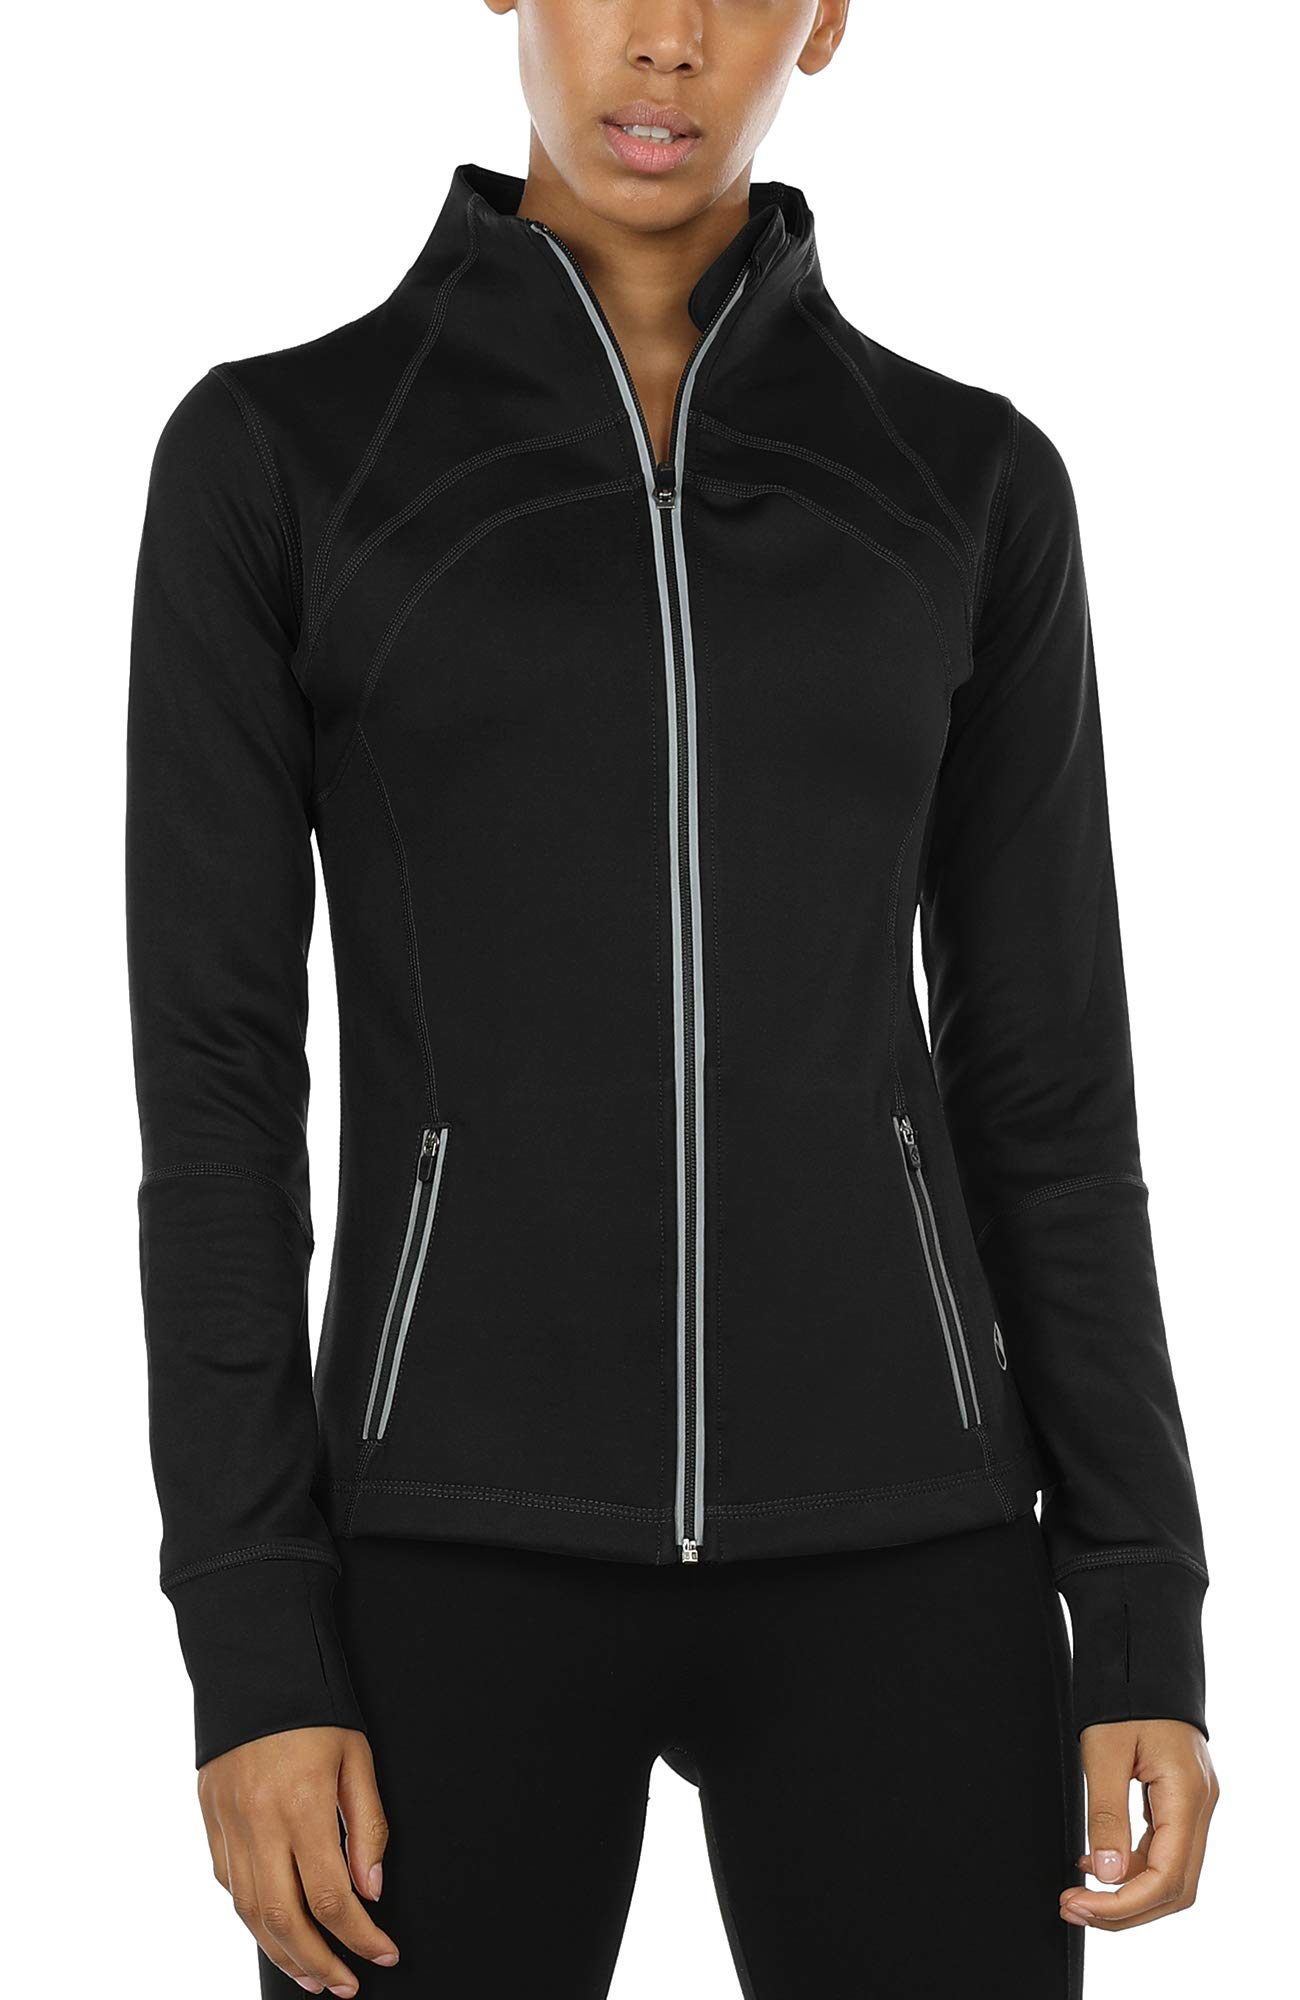 icyzone Women's Running Shirt Full Zip Workout Track Jacket with Thumb Holes (S, Solid Black)